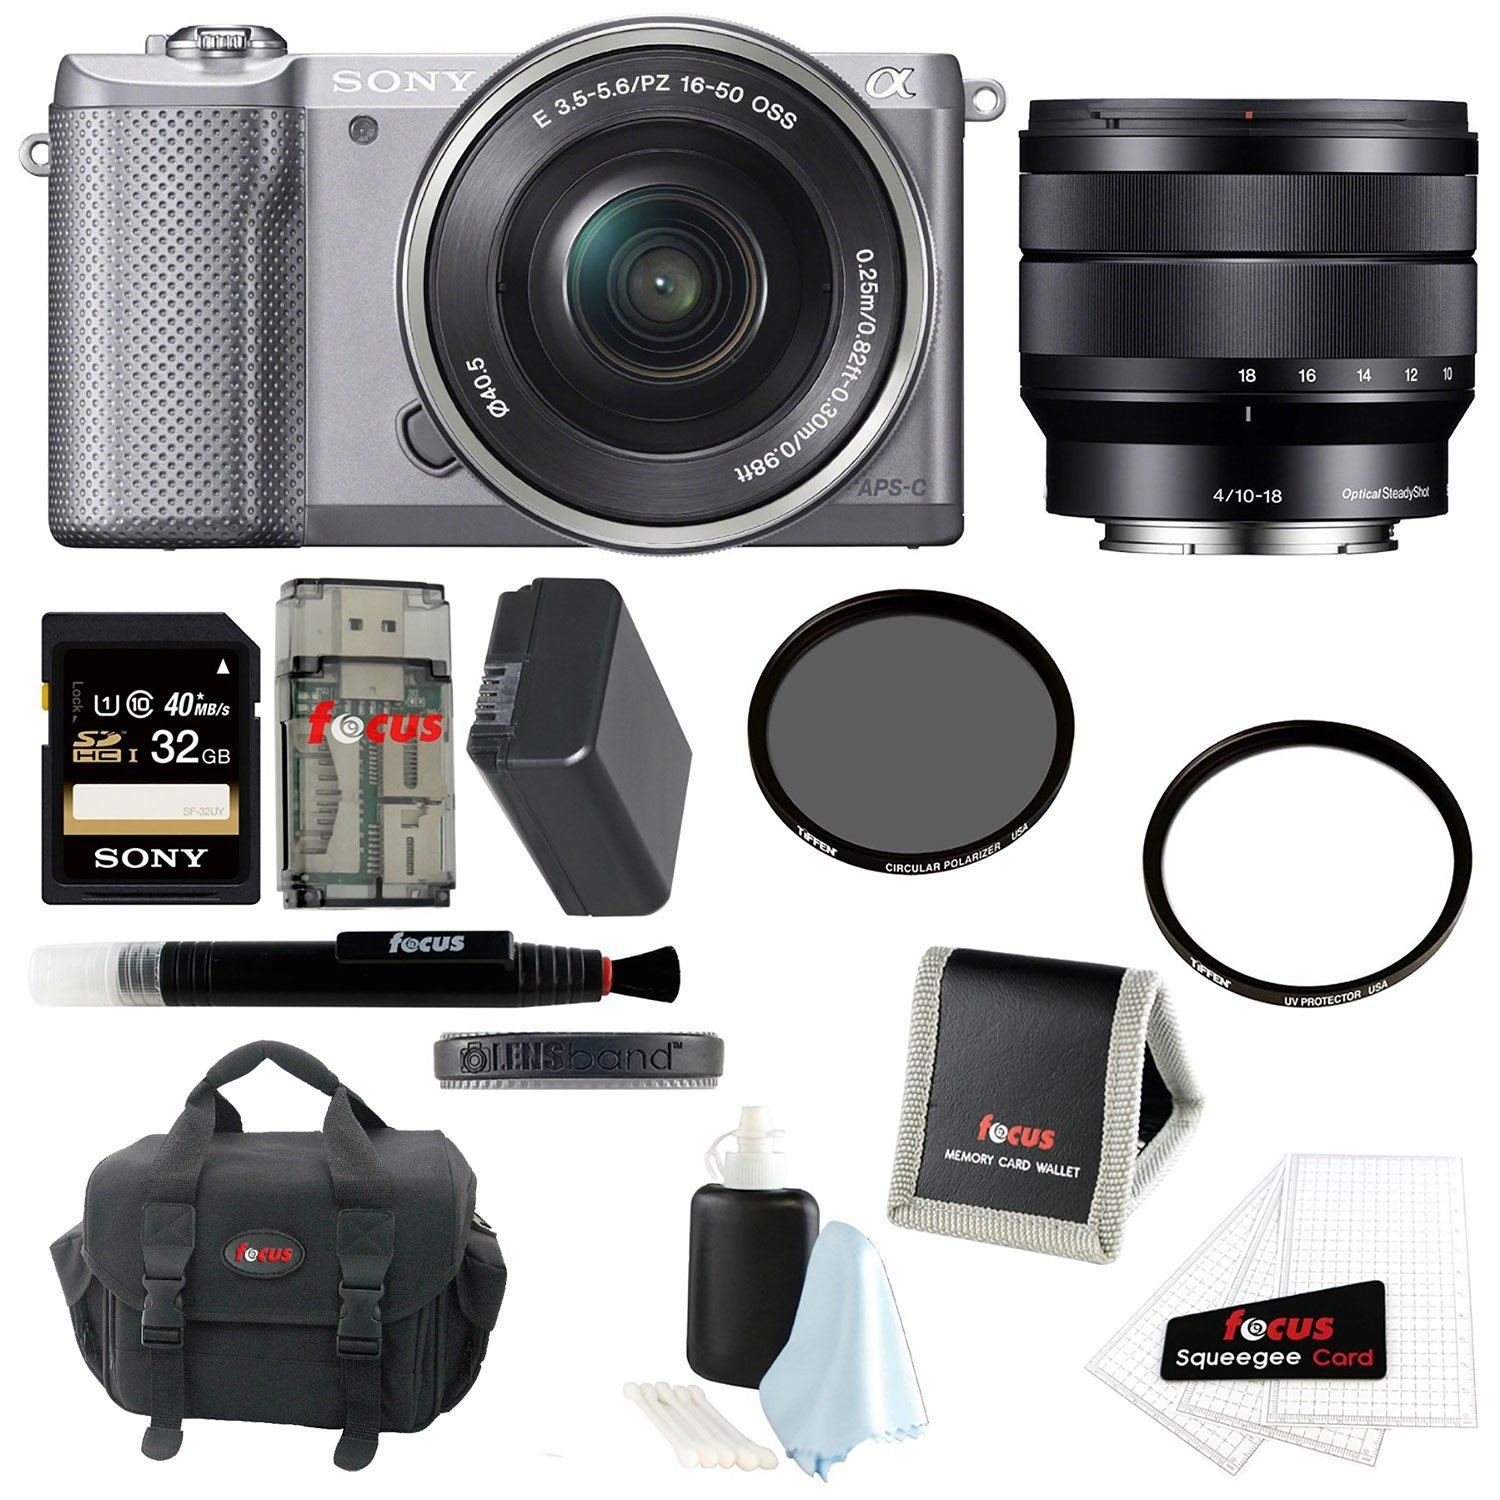 Sony Alpha A5000 ILCE-5000L/S Mirrorless Digital Camera (Silver) + Sony SEL1018 10-18mm f/4 Wide-Angle Zoom Lens + Sony 32GB SDHC/SDXC Class 10 UHS-1 Memory Card + Focus Soft Carry Case + NPFW50 Battery for Sony + Accessory Kit